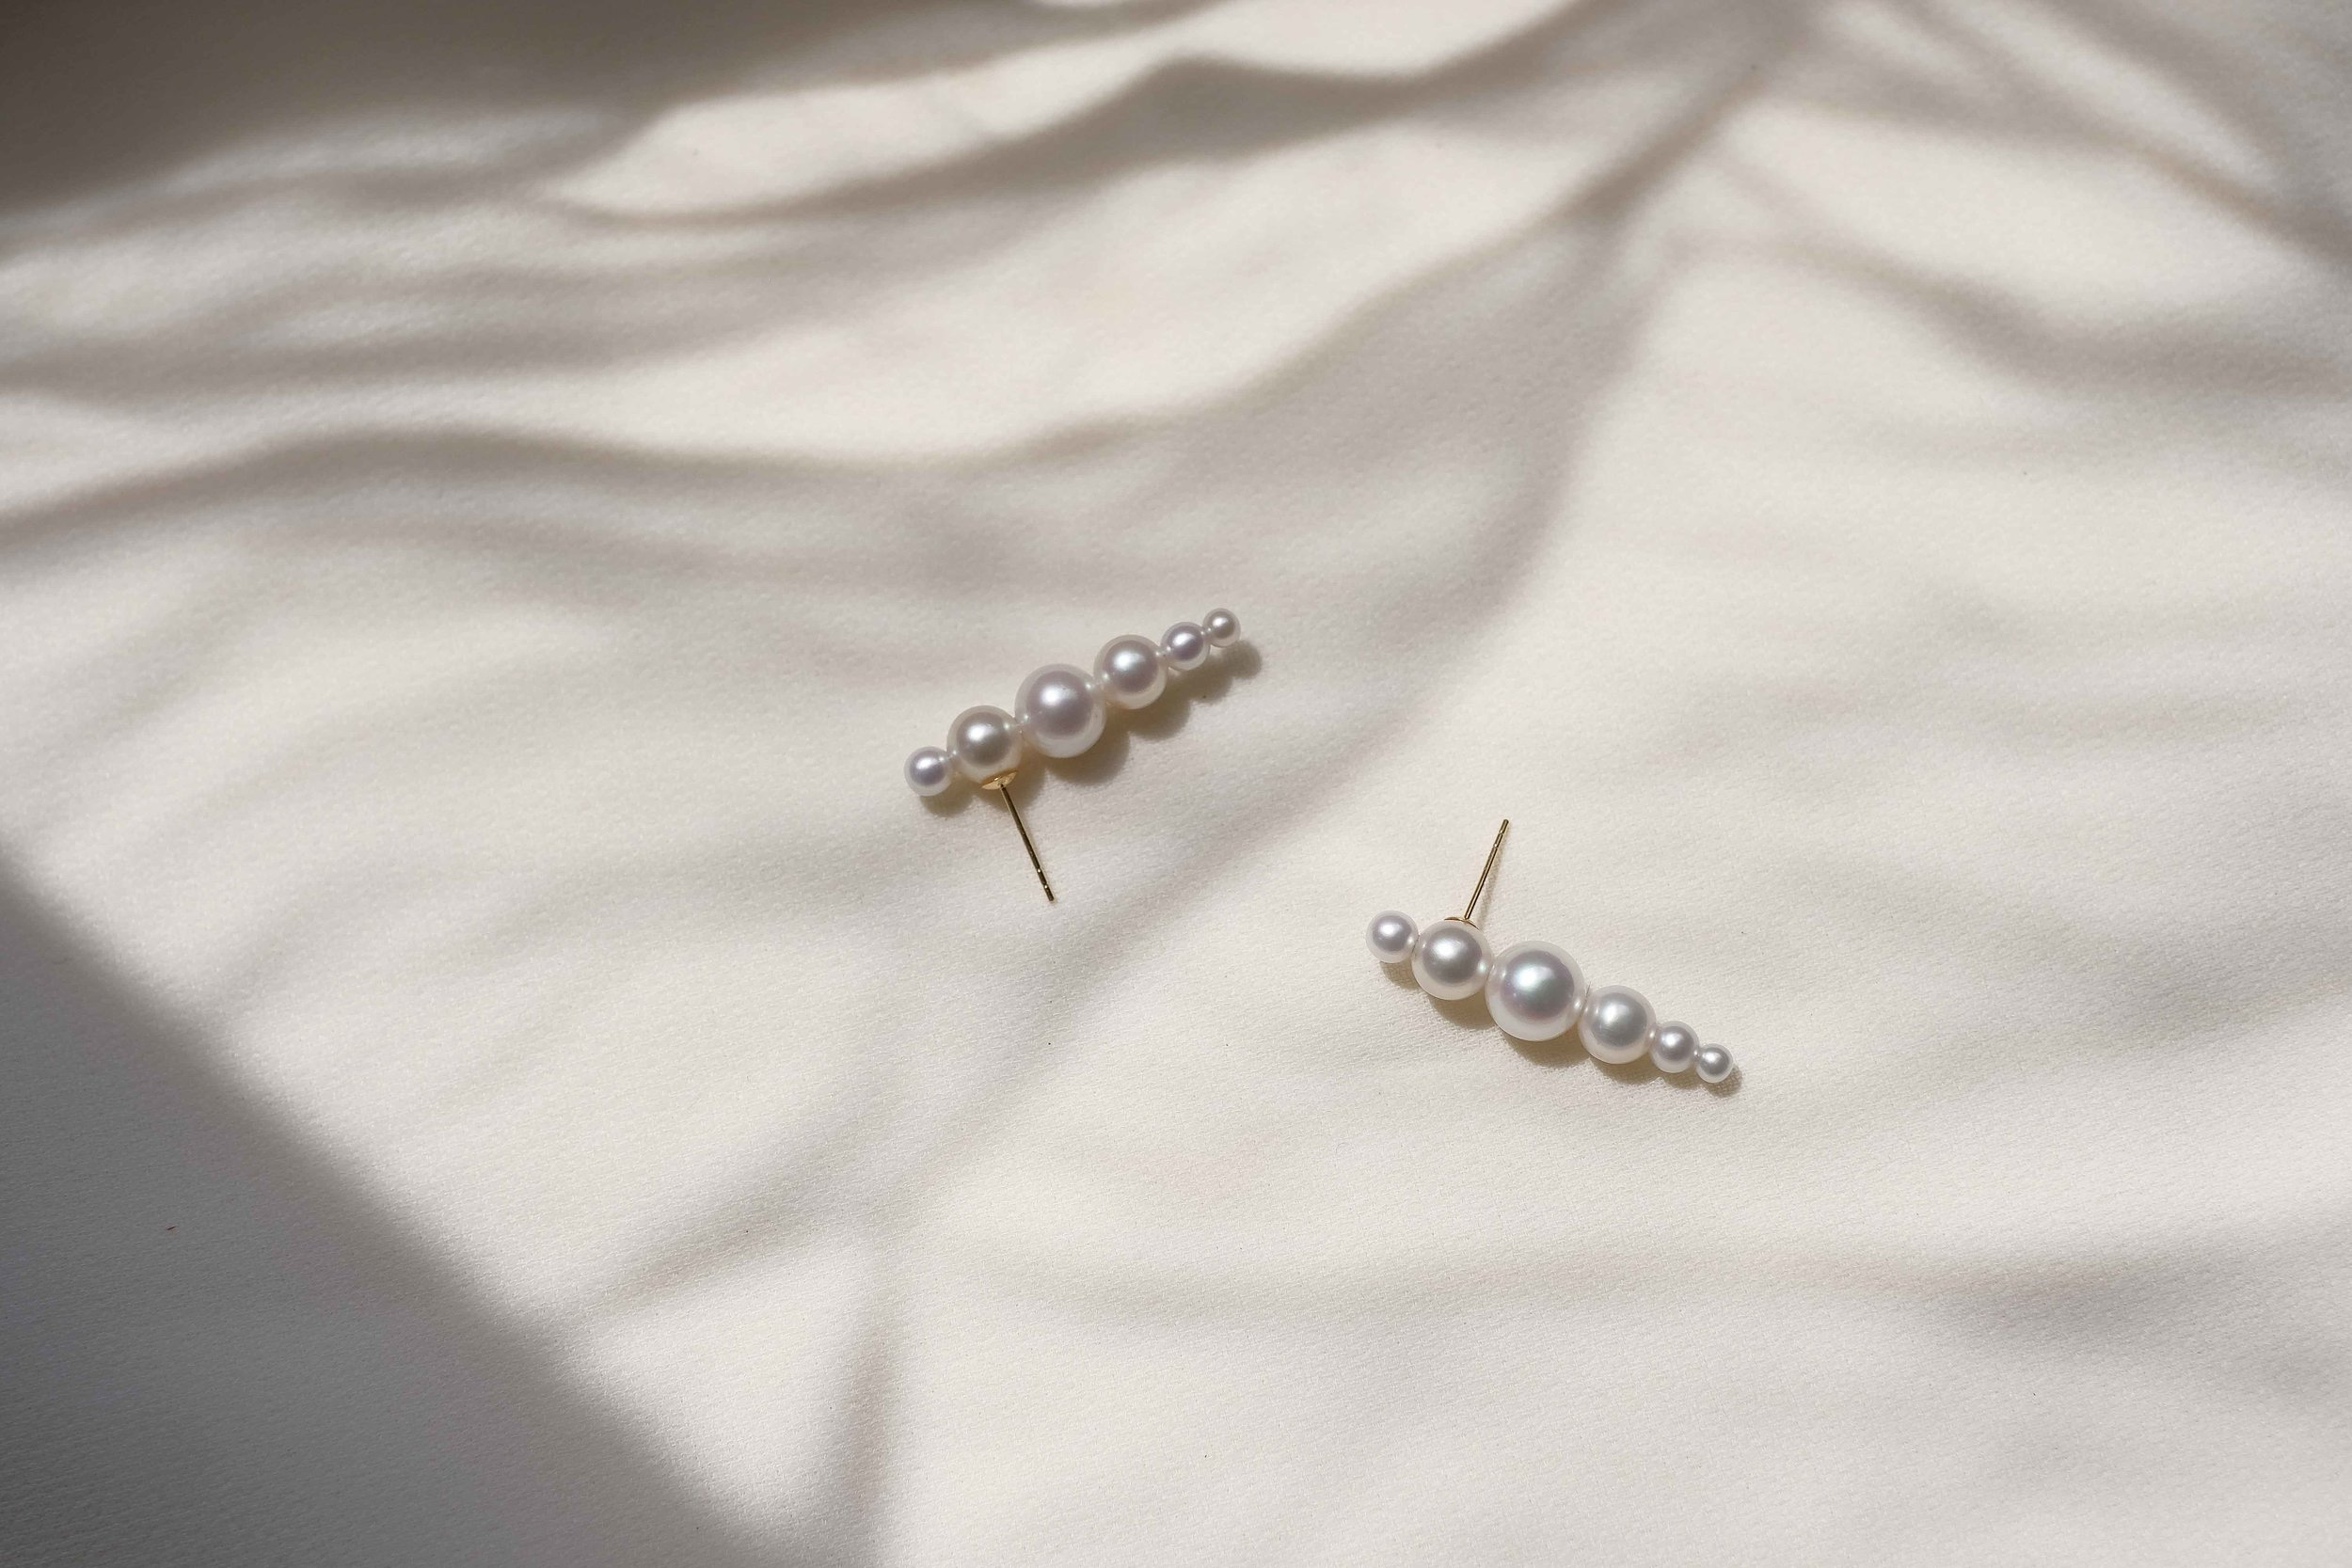 Versed in 18k gold and fresh water pearls, the sequence of pearls arranged in a rhythmic sequence, extending in elegance.